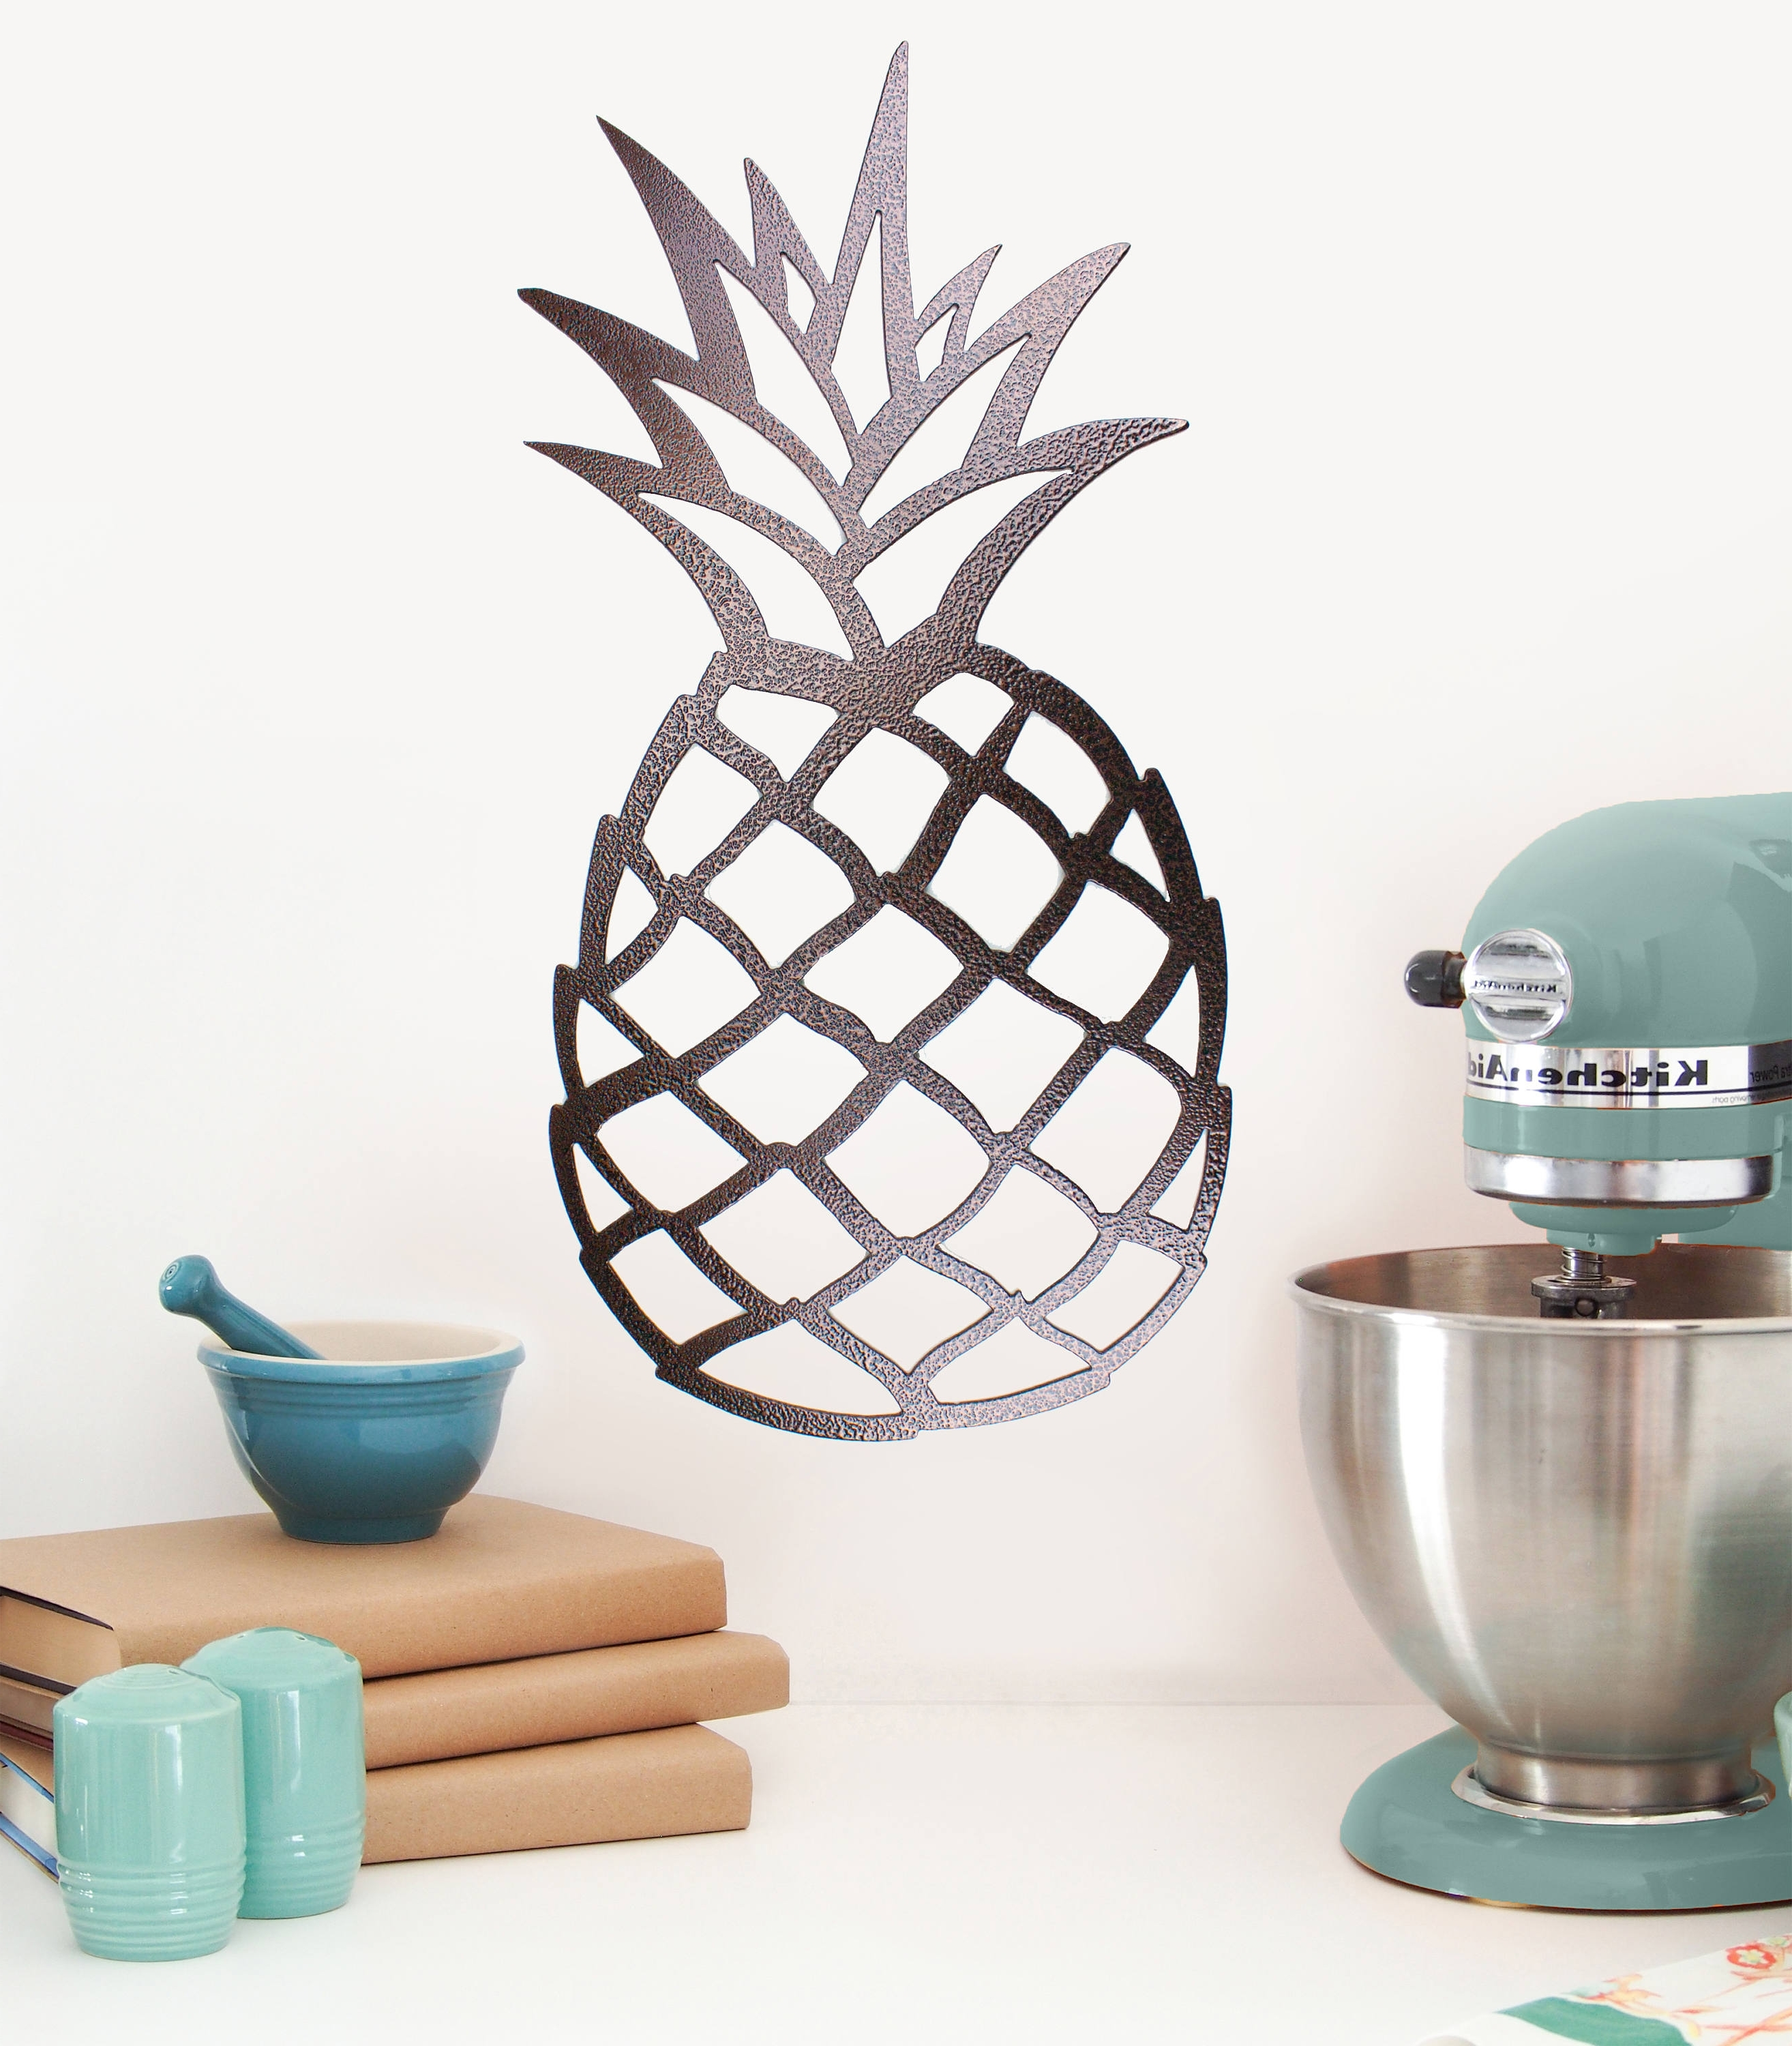 Recent Pineapple Decor, Kitchen Wall Decor, Metal Wall Art, Tropical Wall Pertaining To Pineapple Metal Wall Art (View 14 of 15)